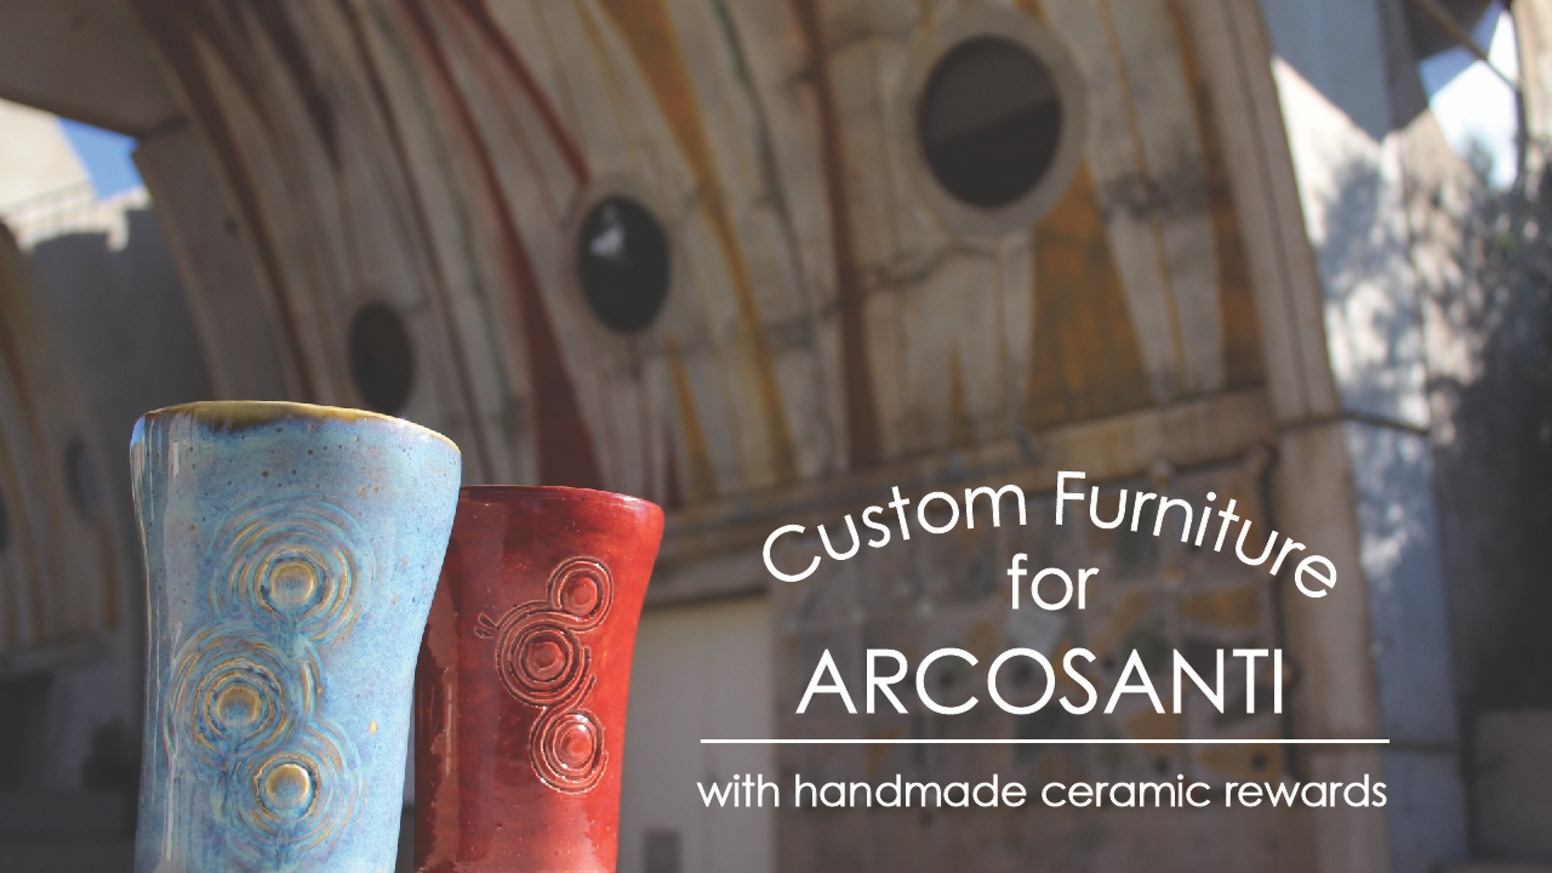 Custom furniture for the ever-evolving community working to prototype Arcology at Arcosanti.